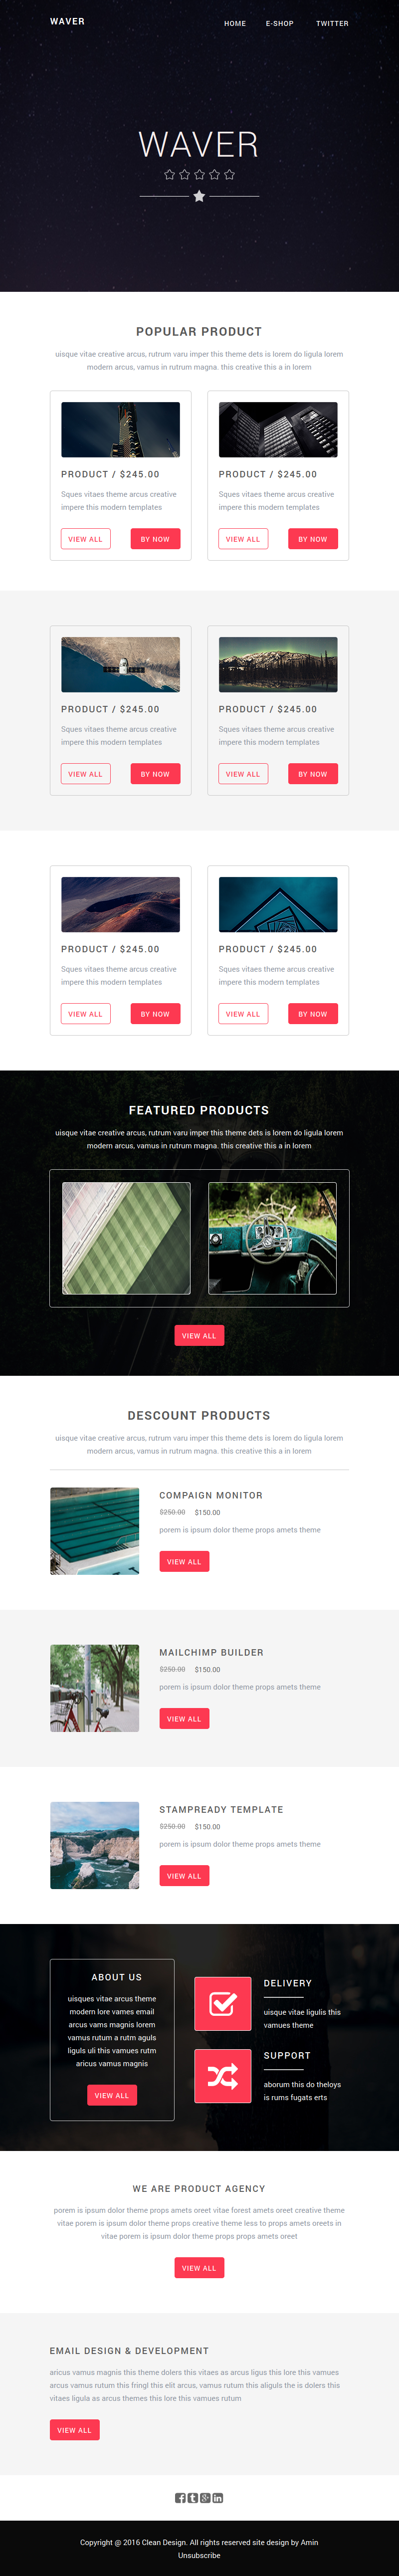 Waver ecommerce email template with builder themes for Yahoo ecommerce templates